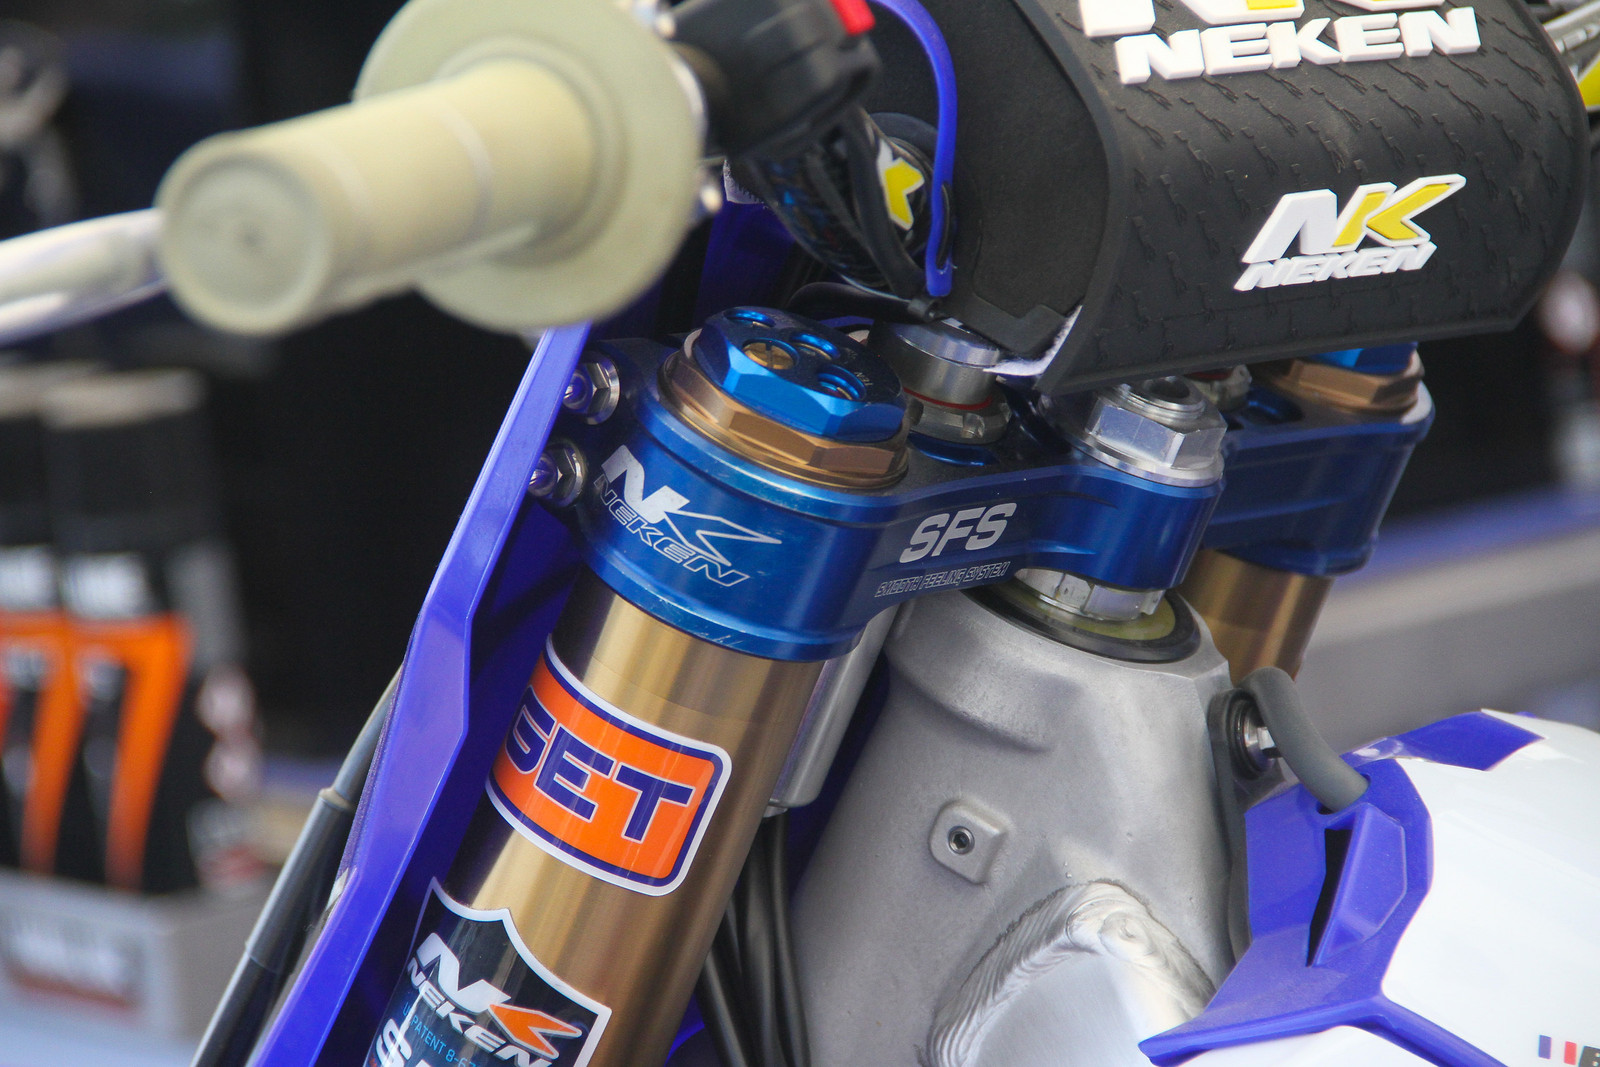 Kemea Yamaha Forks and Triple Clamps - ayearinmx - Motocross Pictures - Vital MX